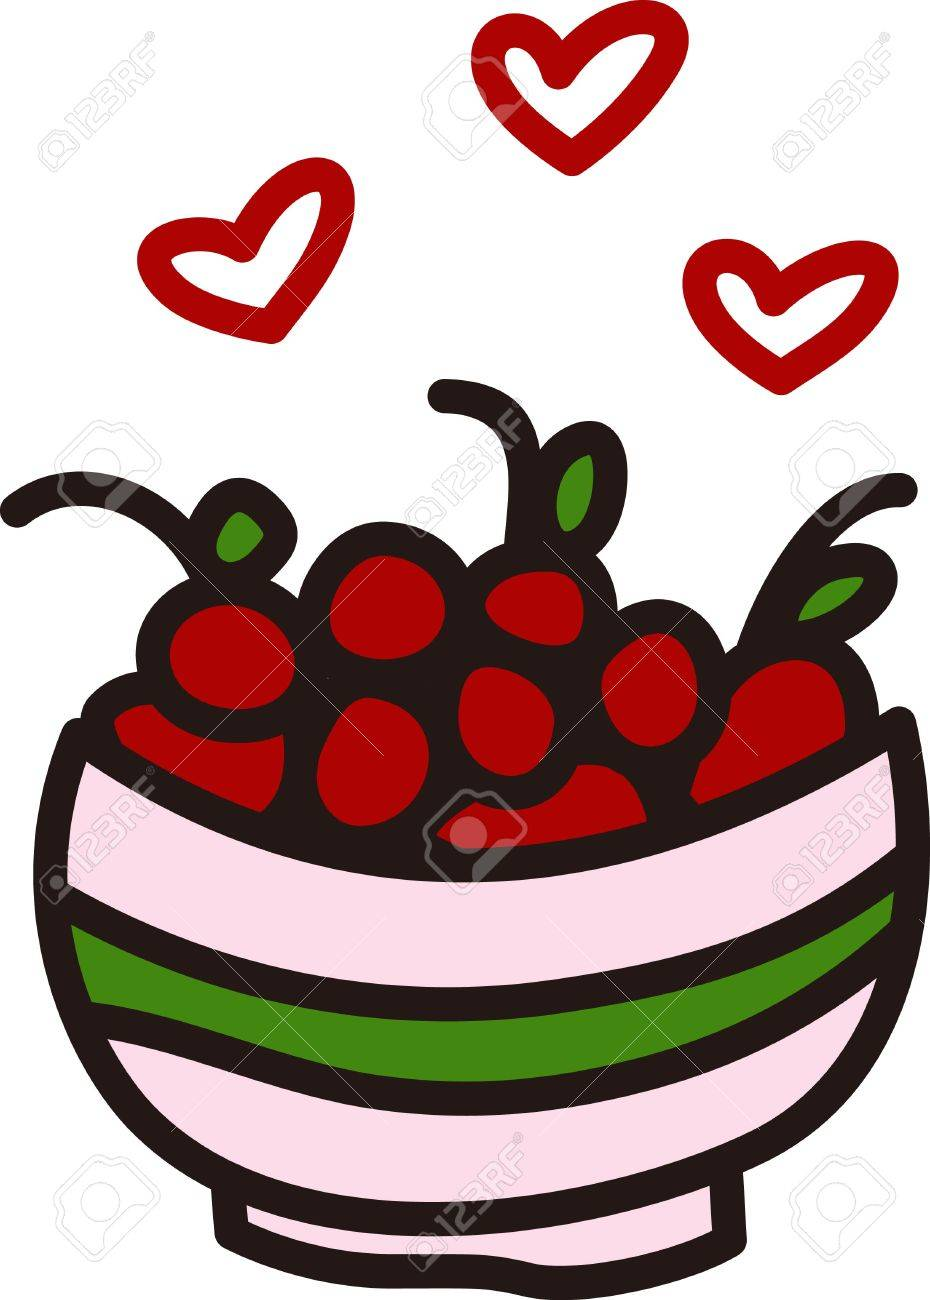 A big bowl of cherries creates a fruity delight. Hearts designate...